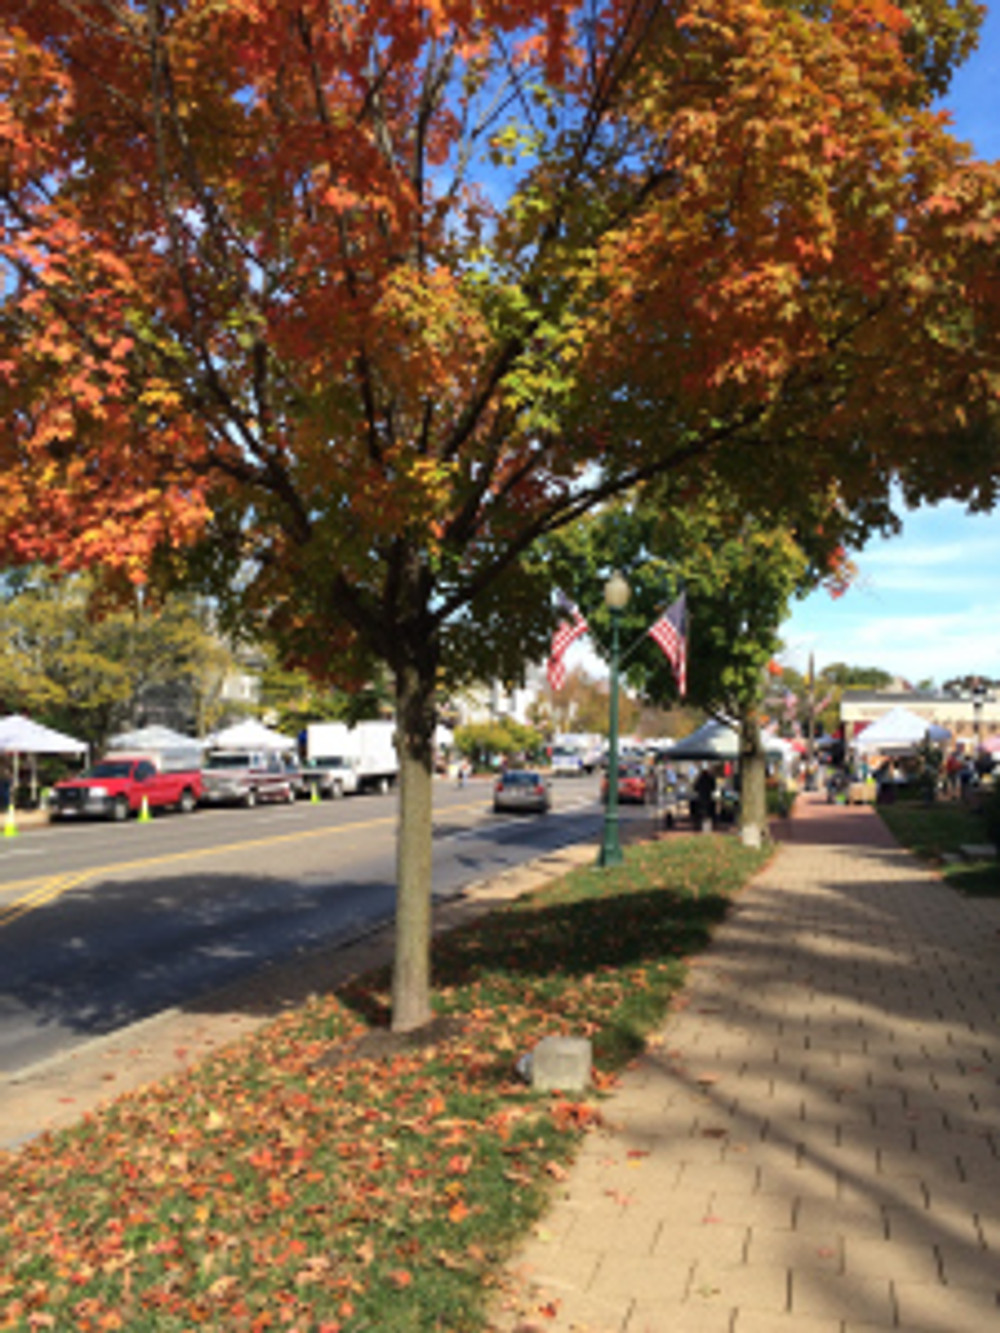 Fall Changes at the Worthington, Ohio Farmer's Market